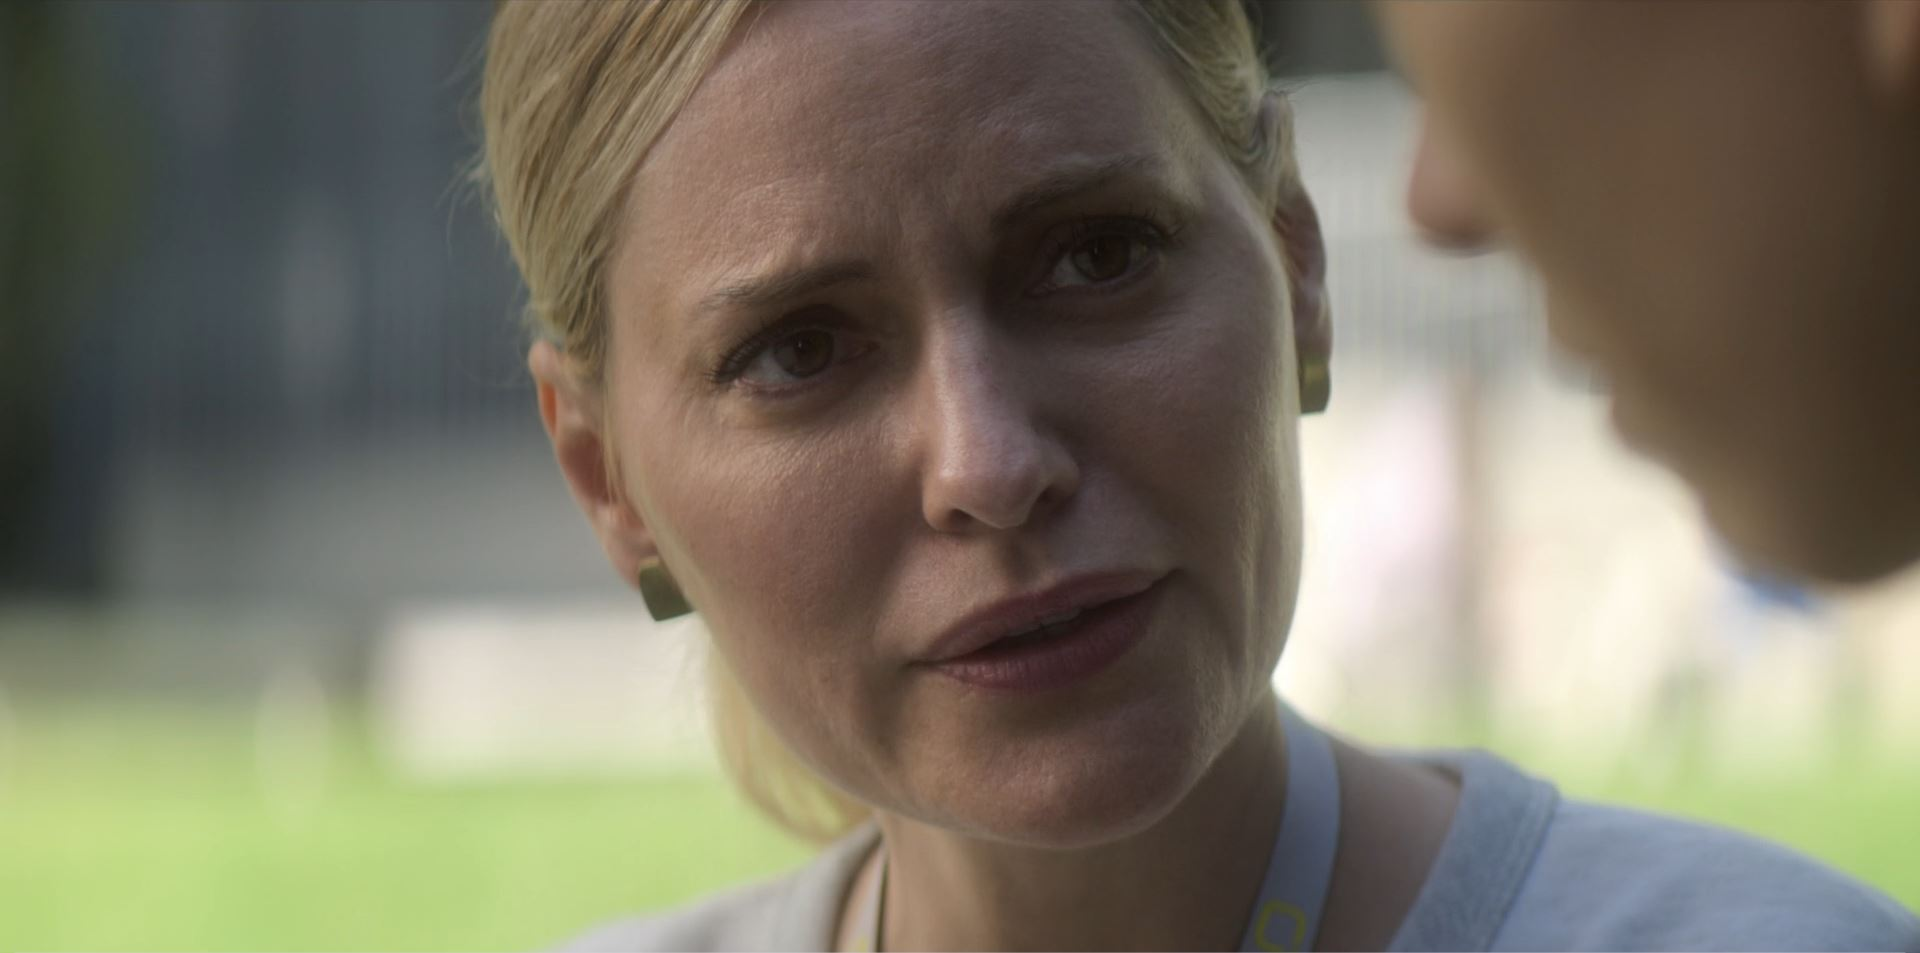 Devs episode 3 Review - Aimee Mullins as Anya